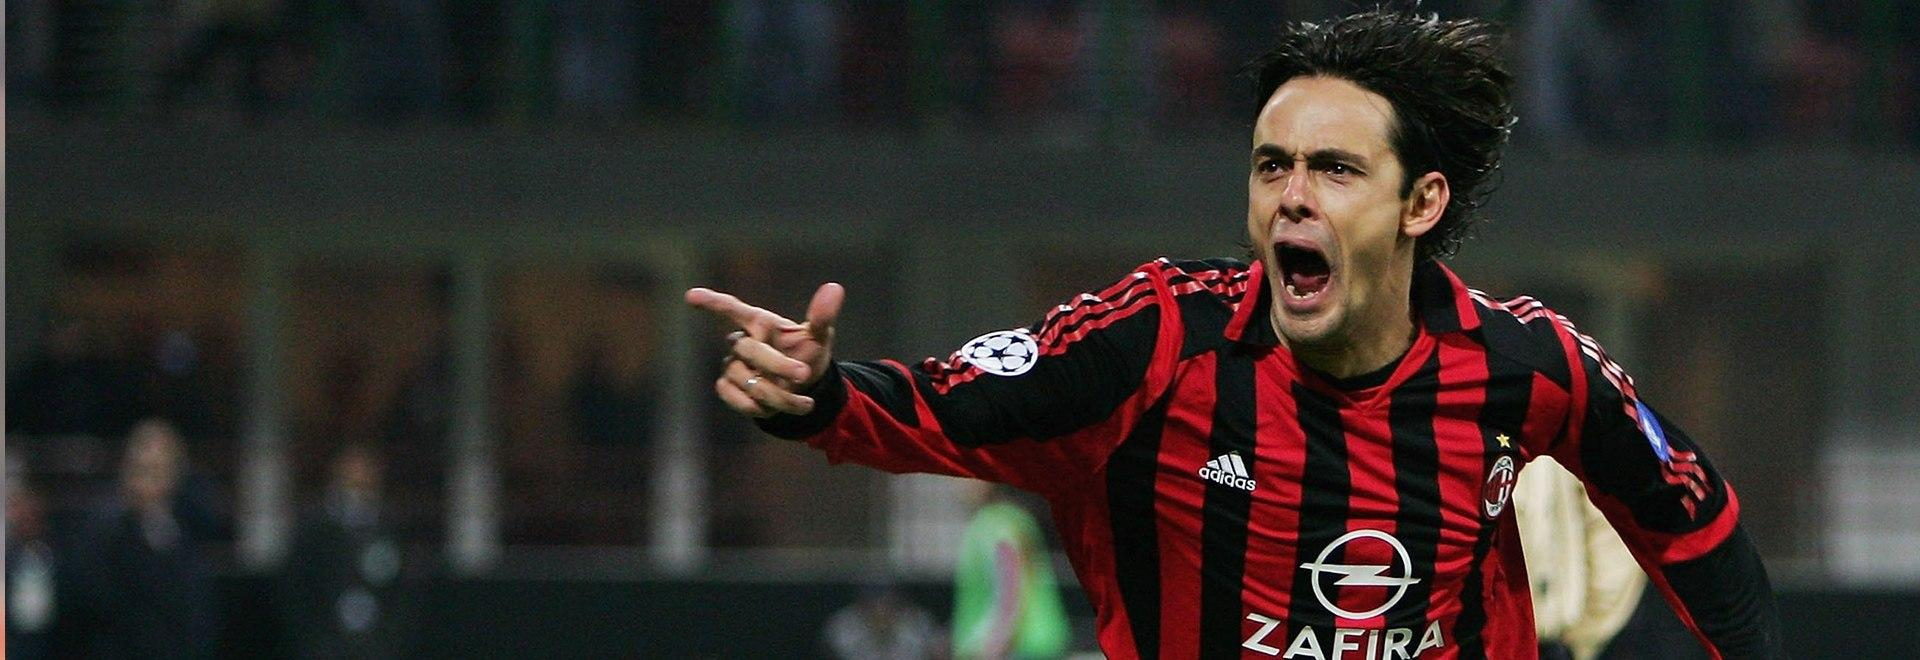 Speciale Inzaghi